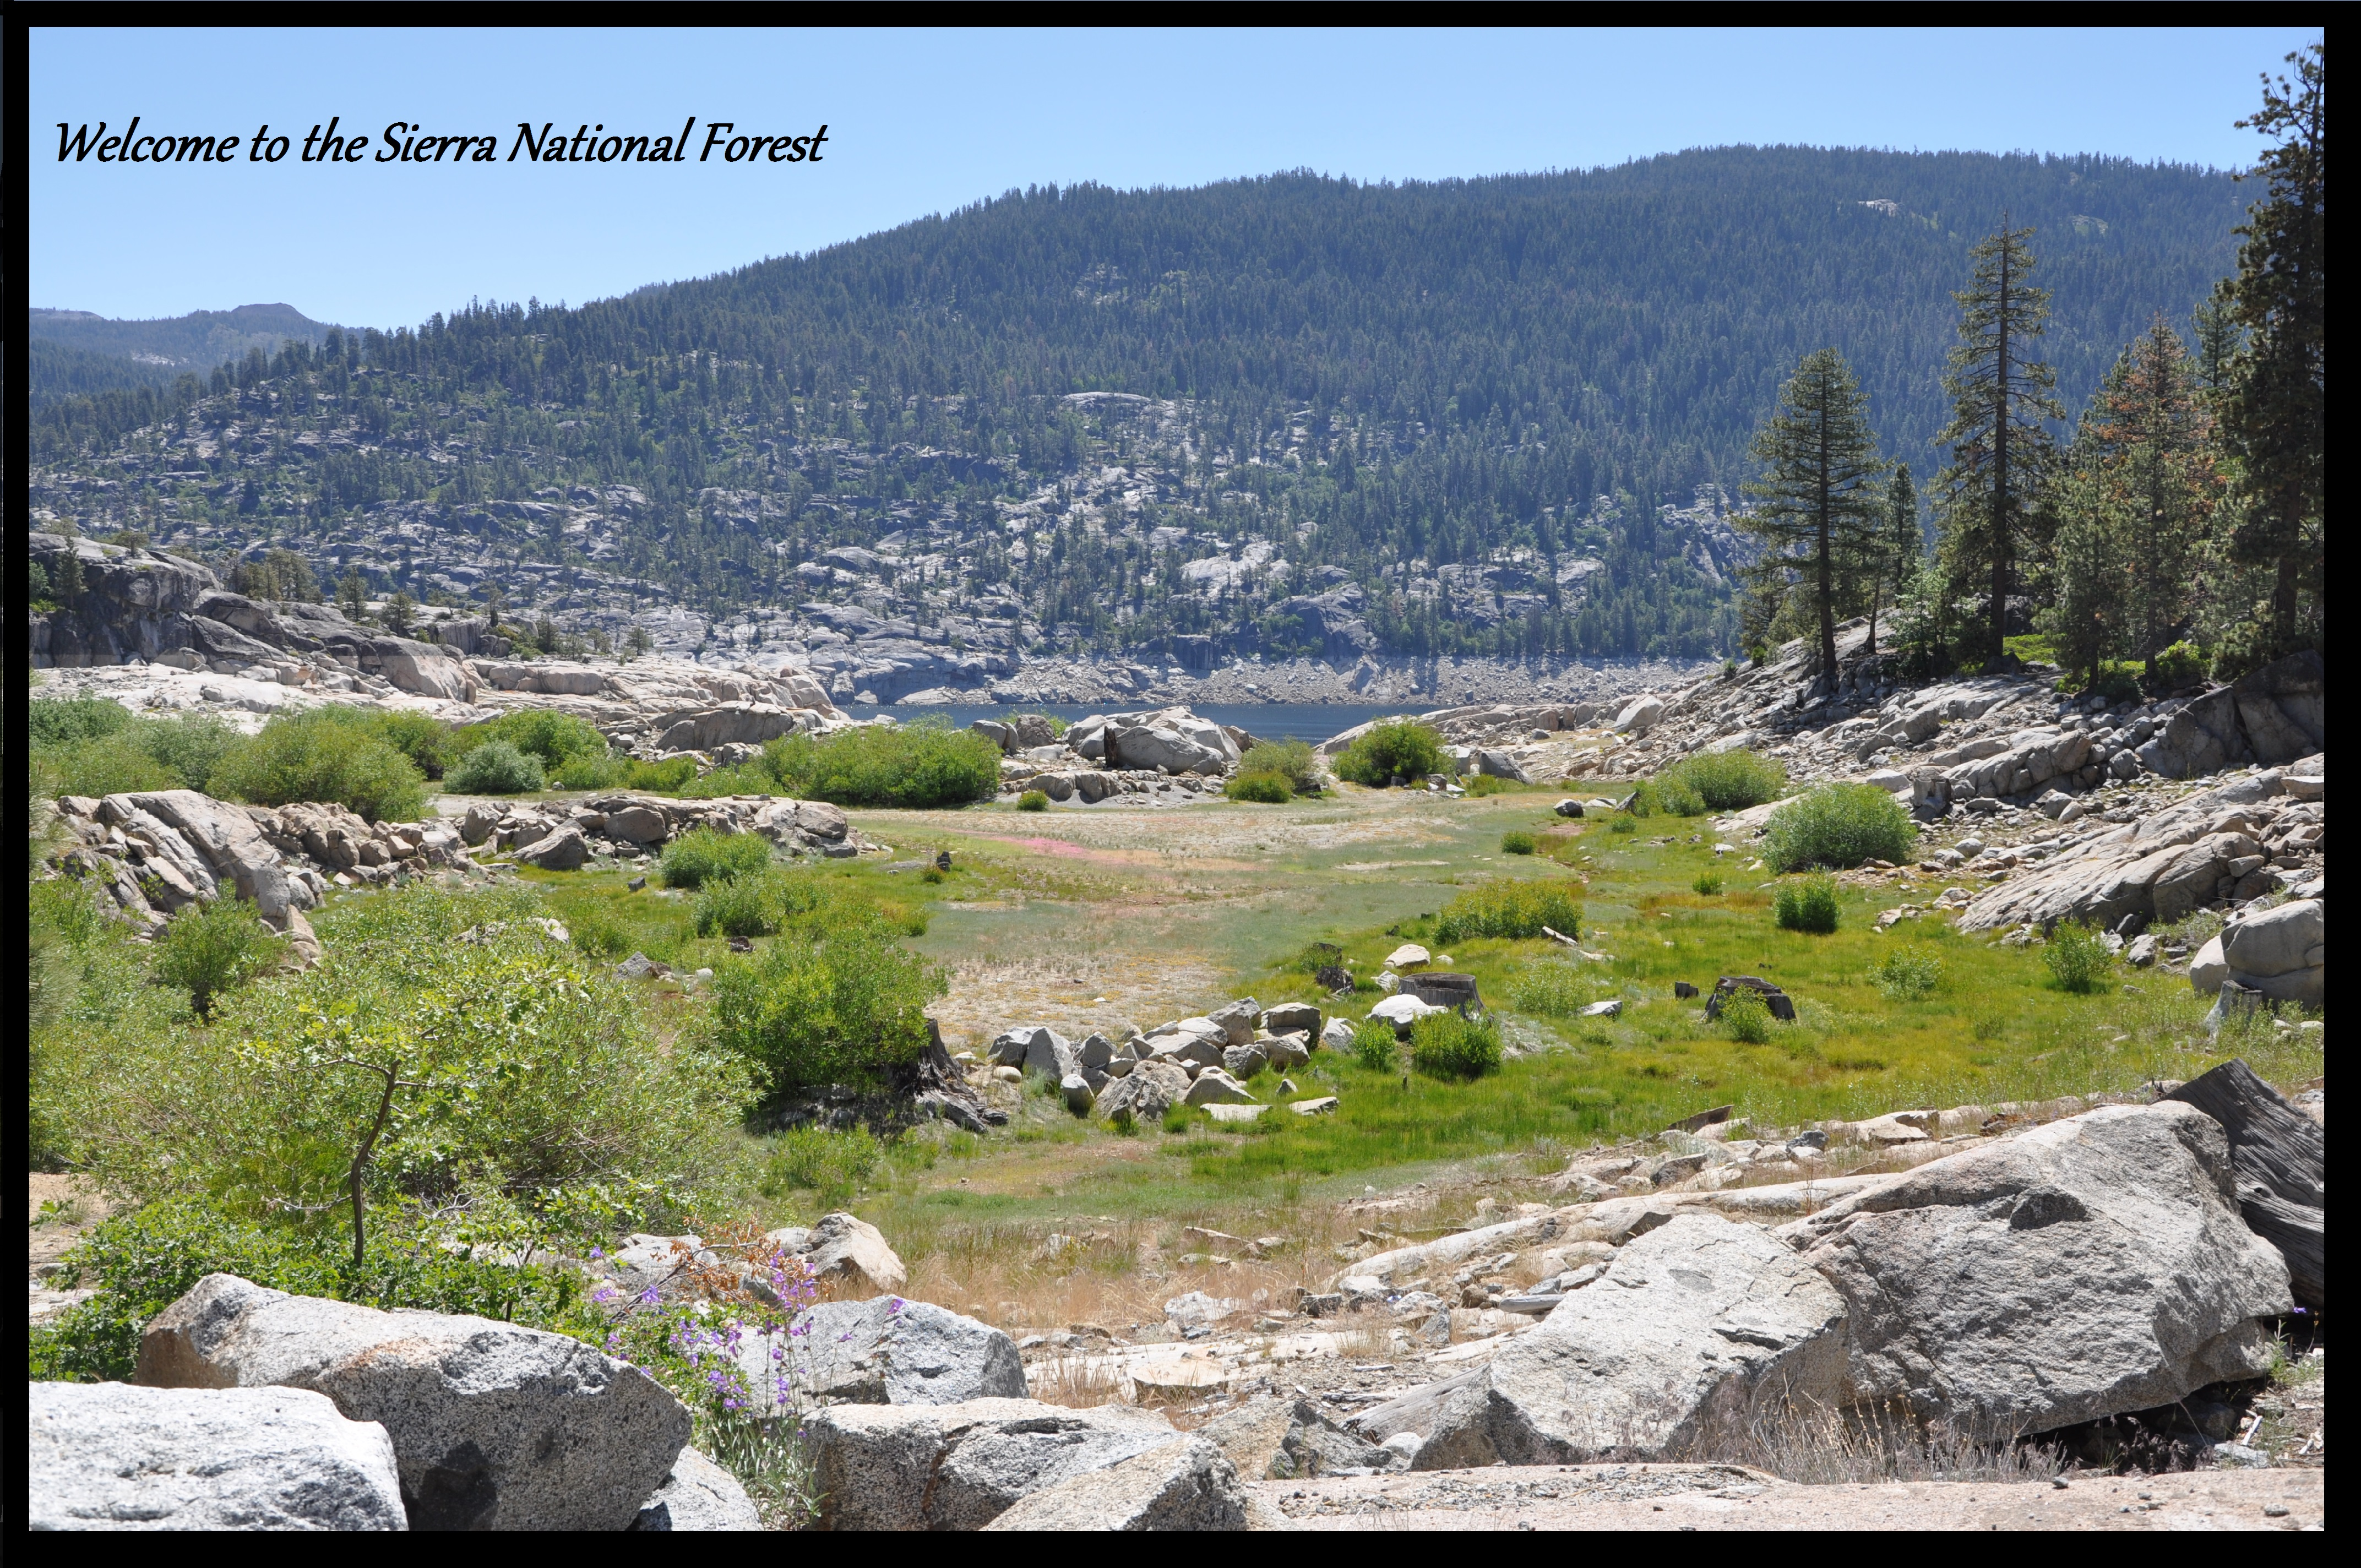 Sierra National Forest - Home